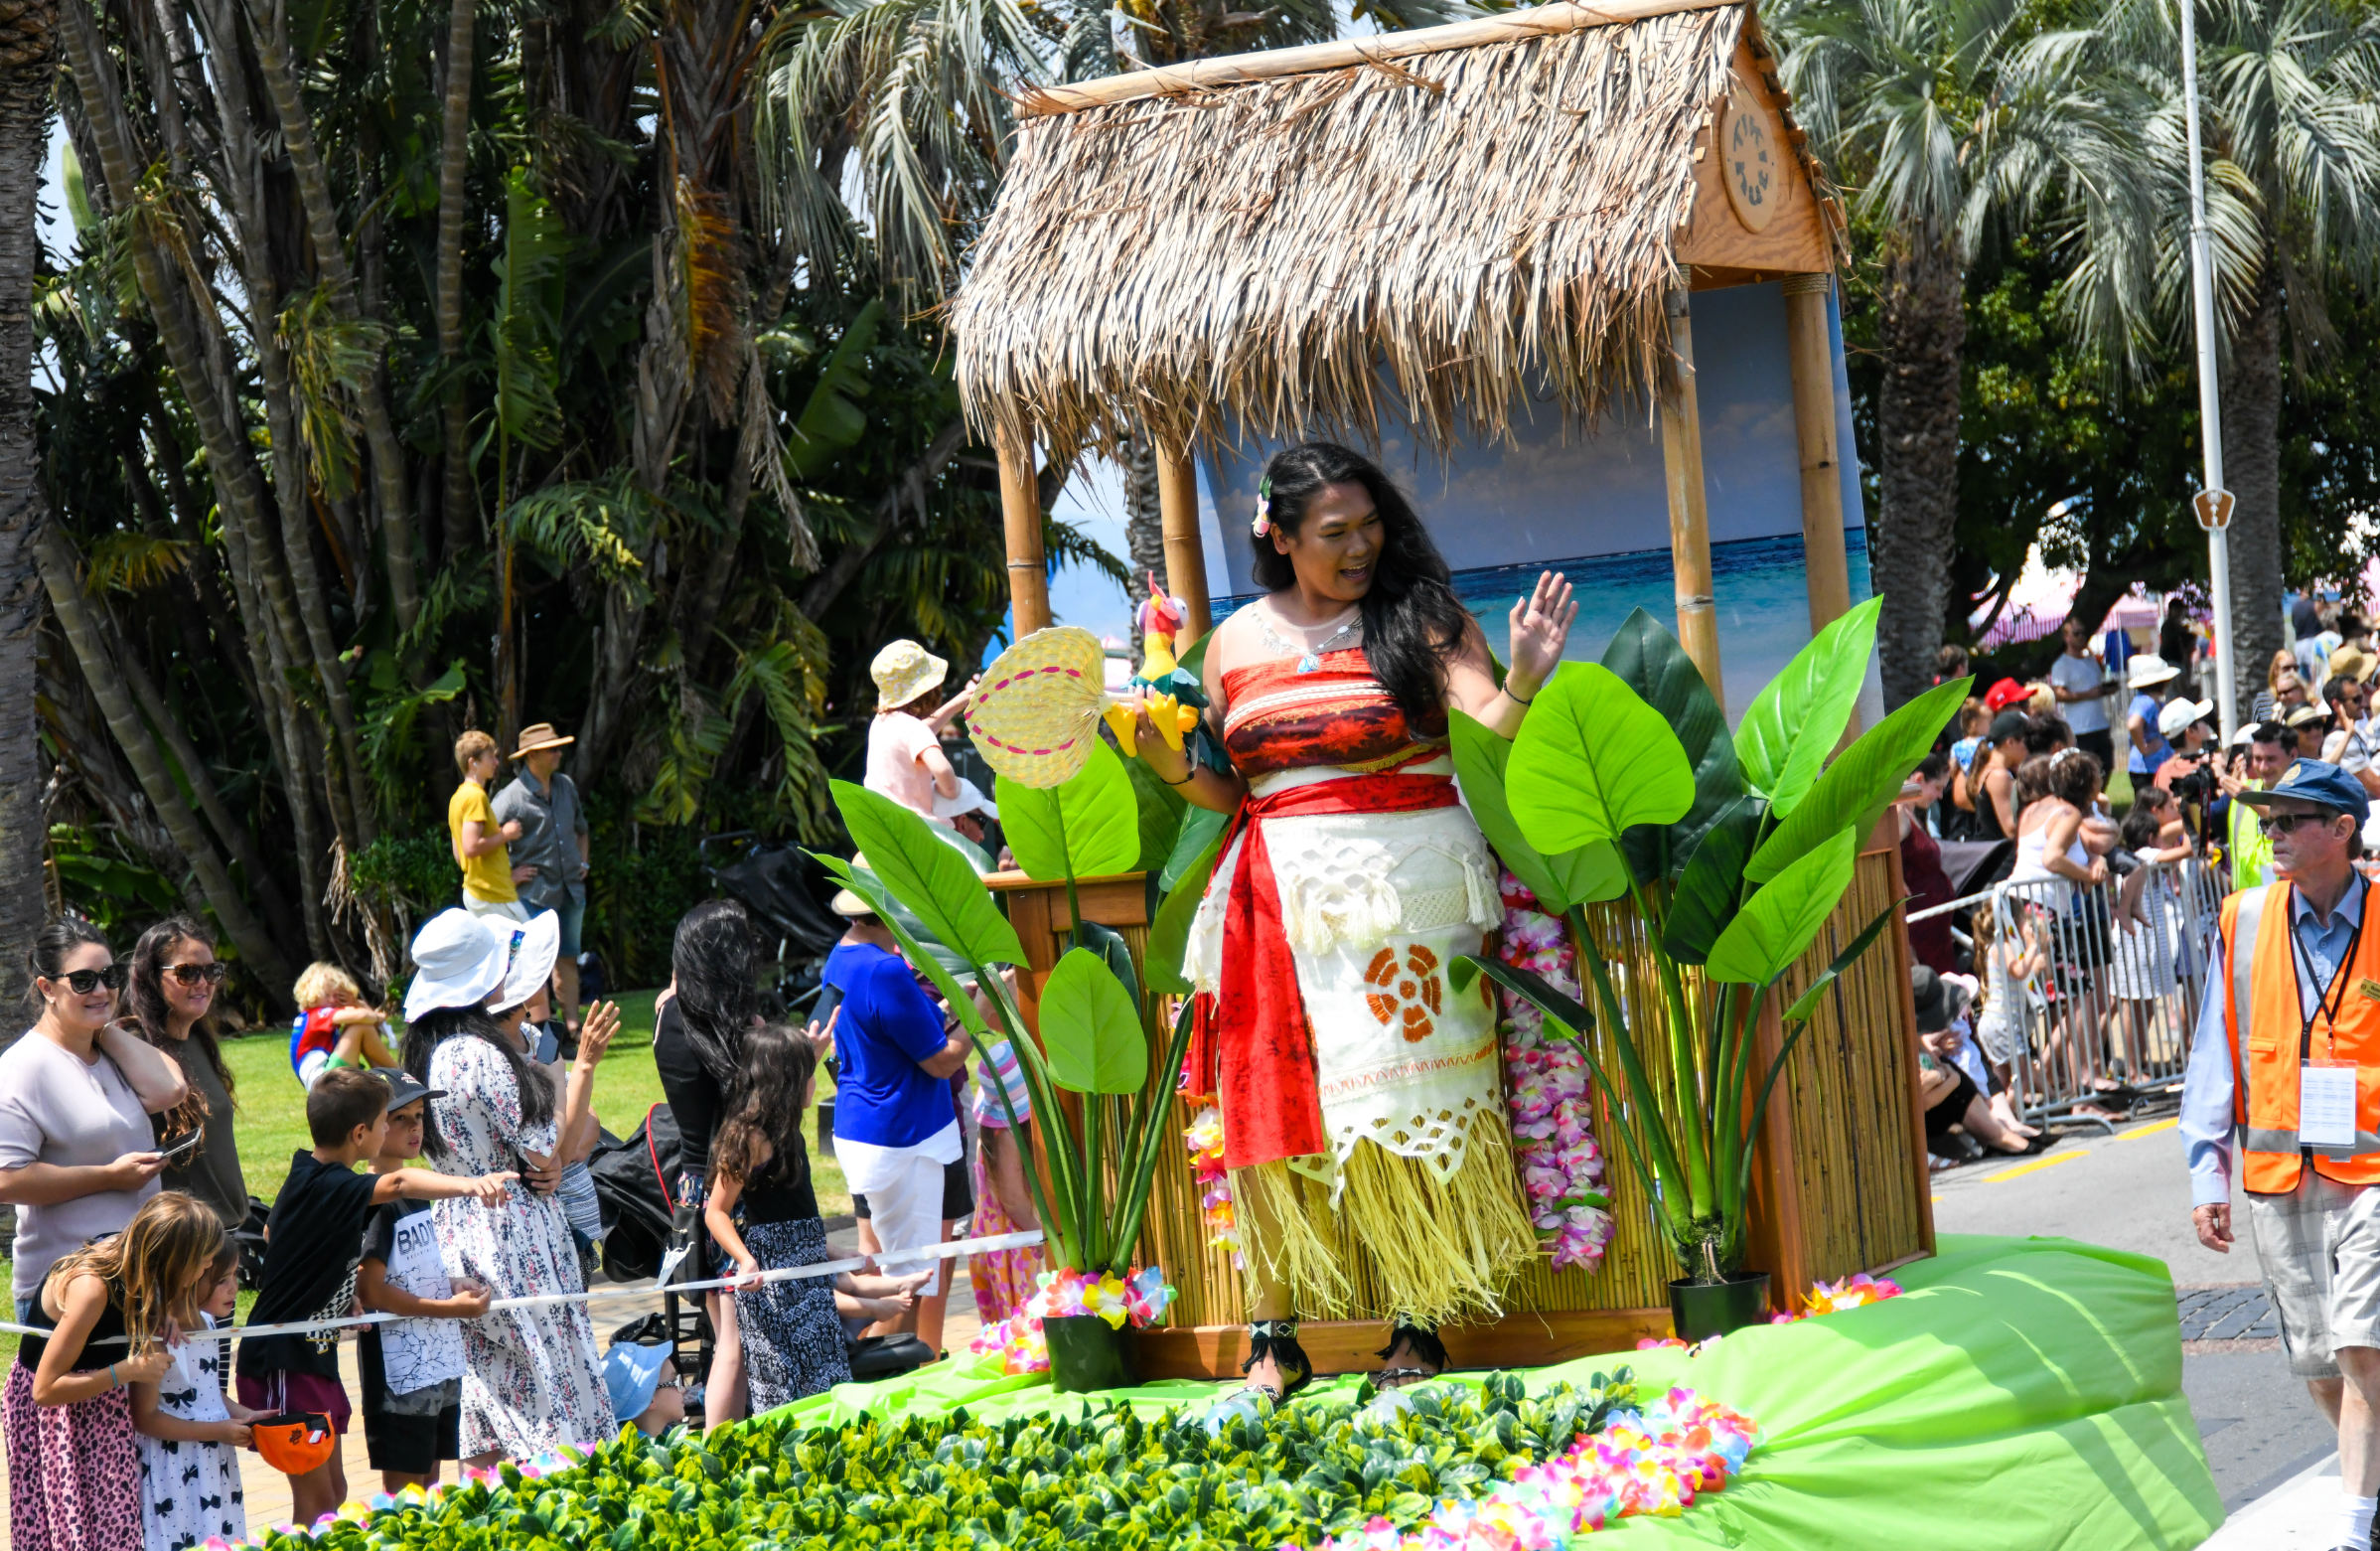 Moana on the float waving to spectators at the Downtown Tauranga Christmas Parade